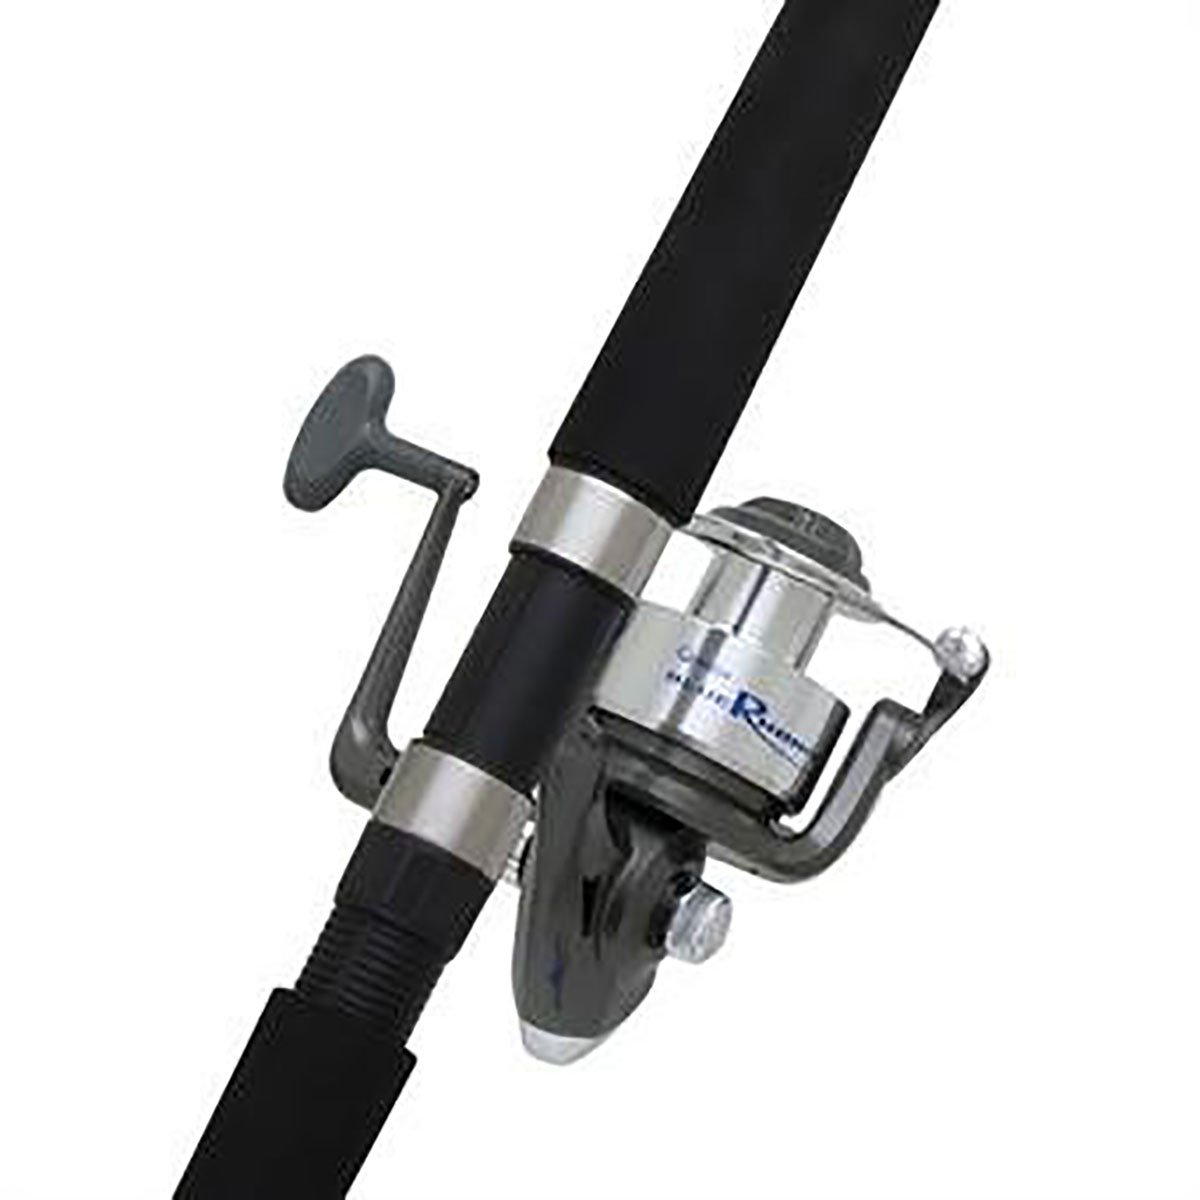 Quantum Fishing Blue Runner Blr60F/Blrs102Mh Spin Fishing Rod and Reel Combo